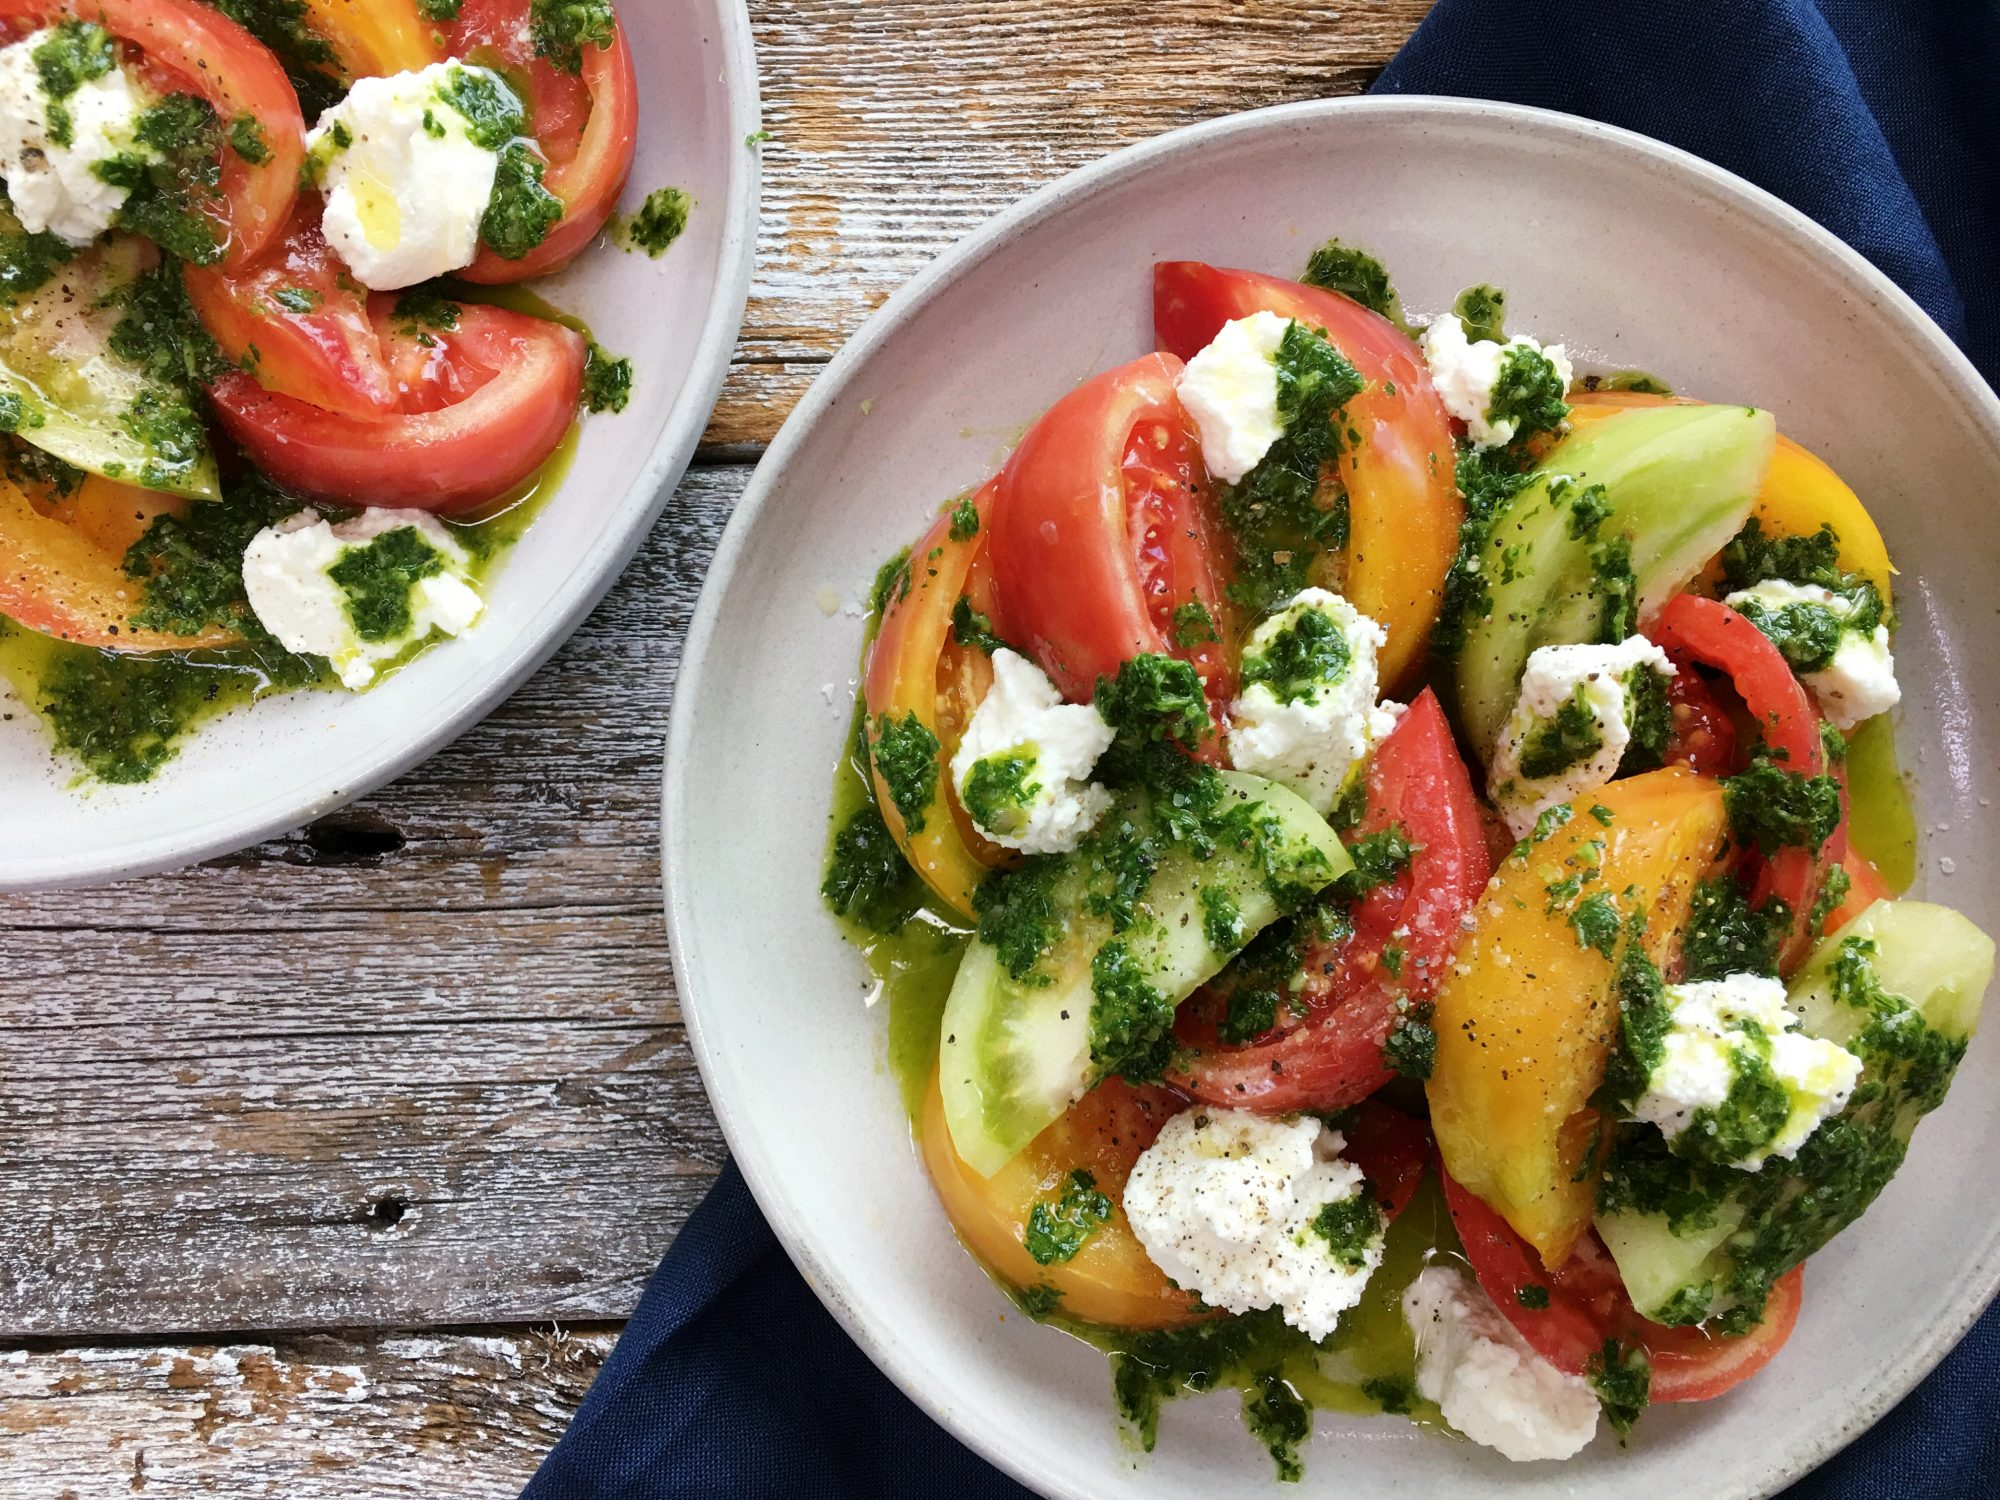 Easy Tomato Salad with Basil Chimichurri and Ricotta